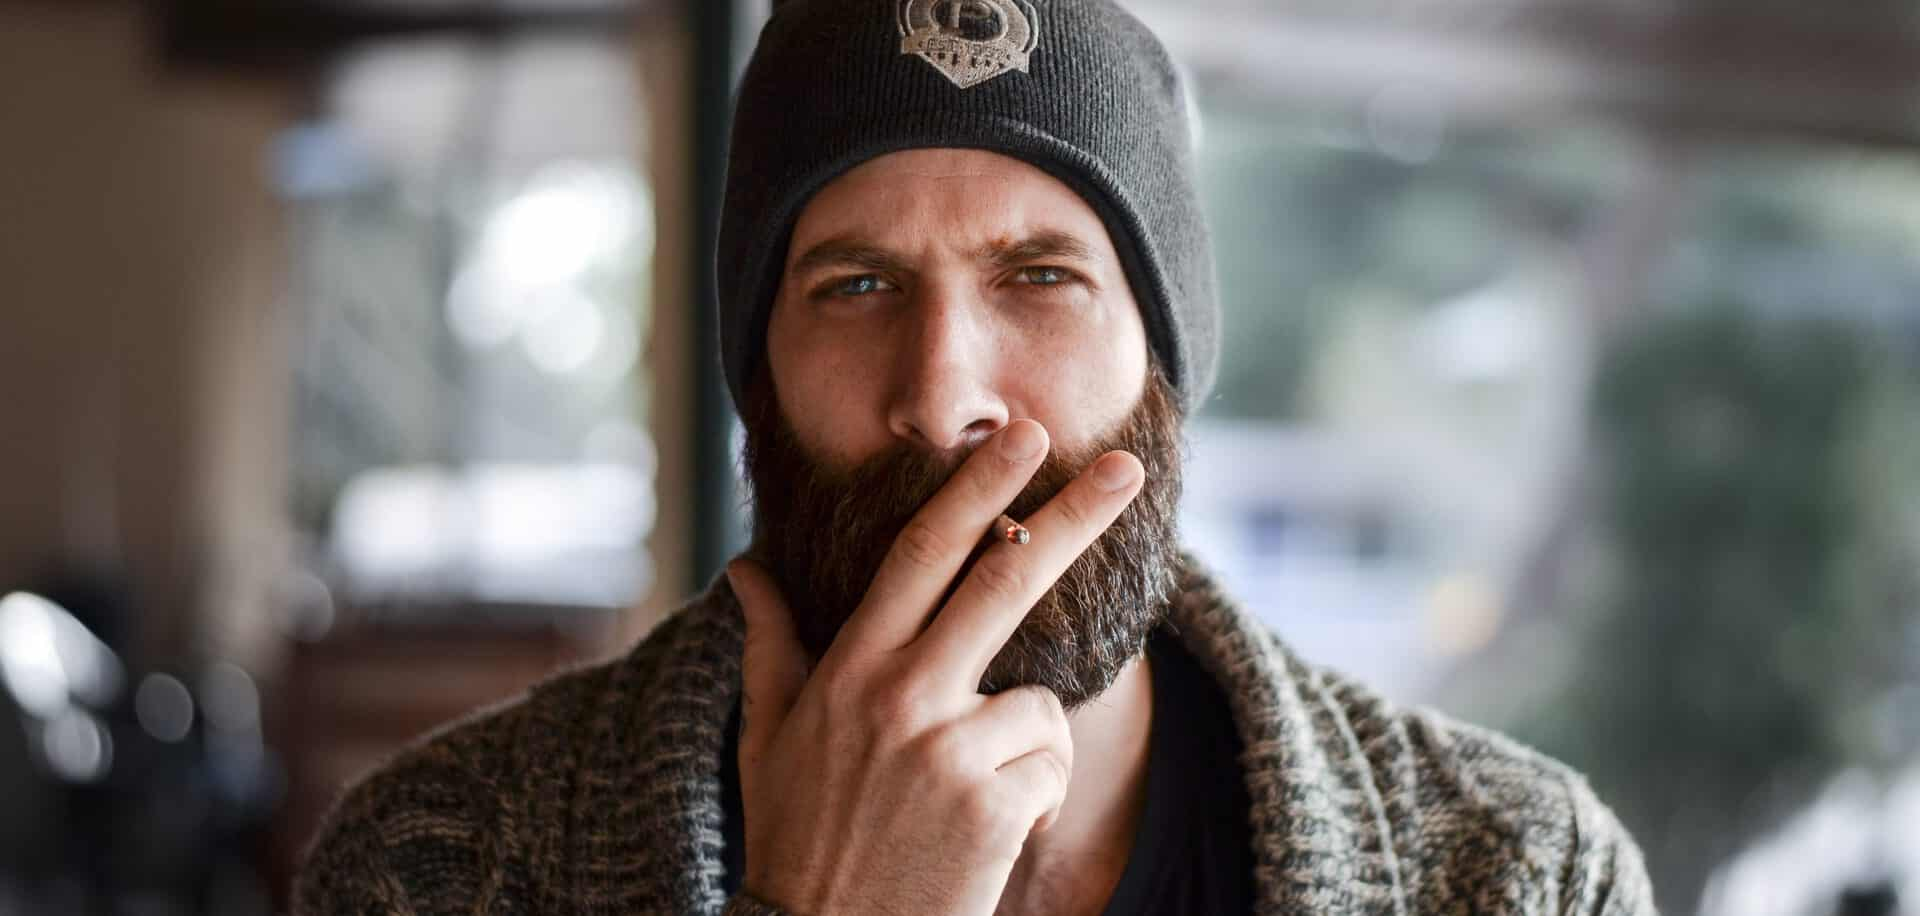 Hipster with beard and cigarette